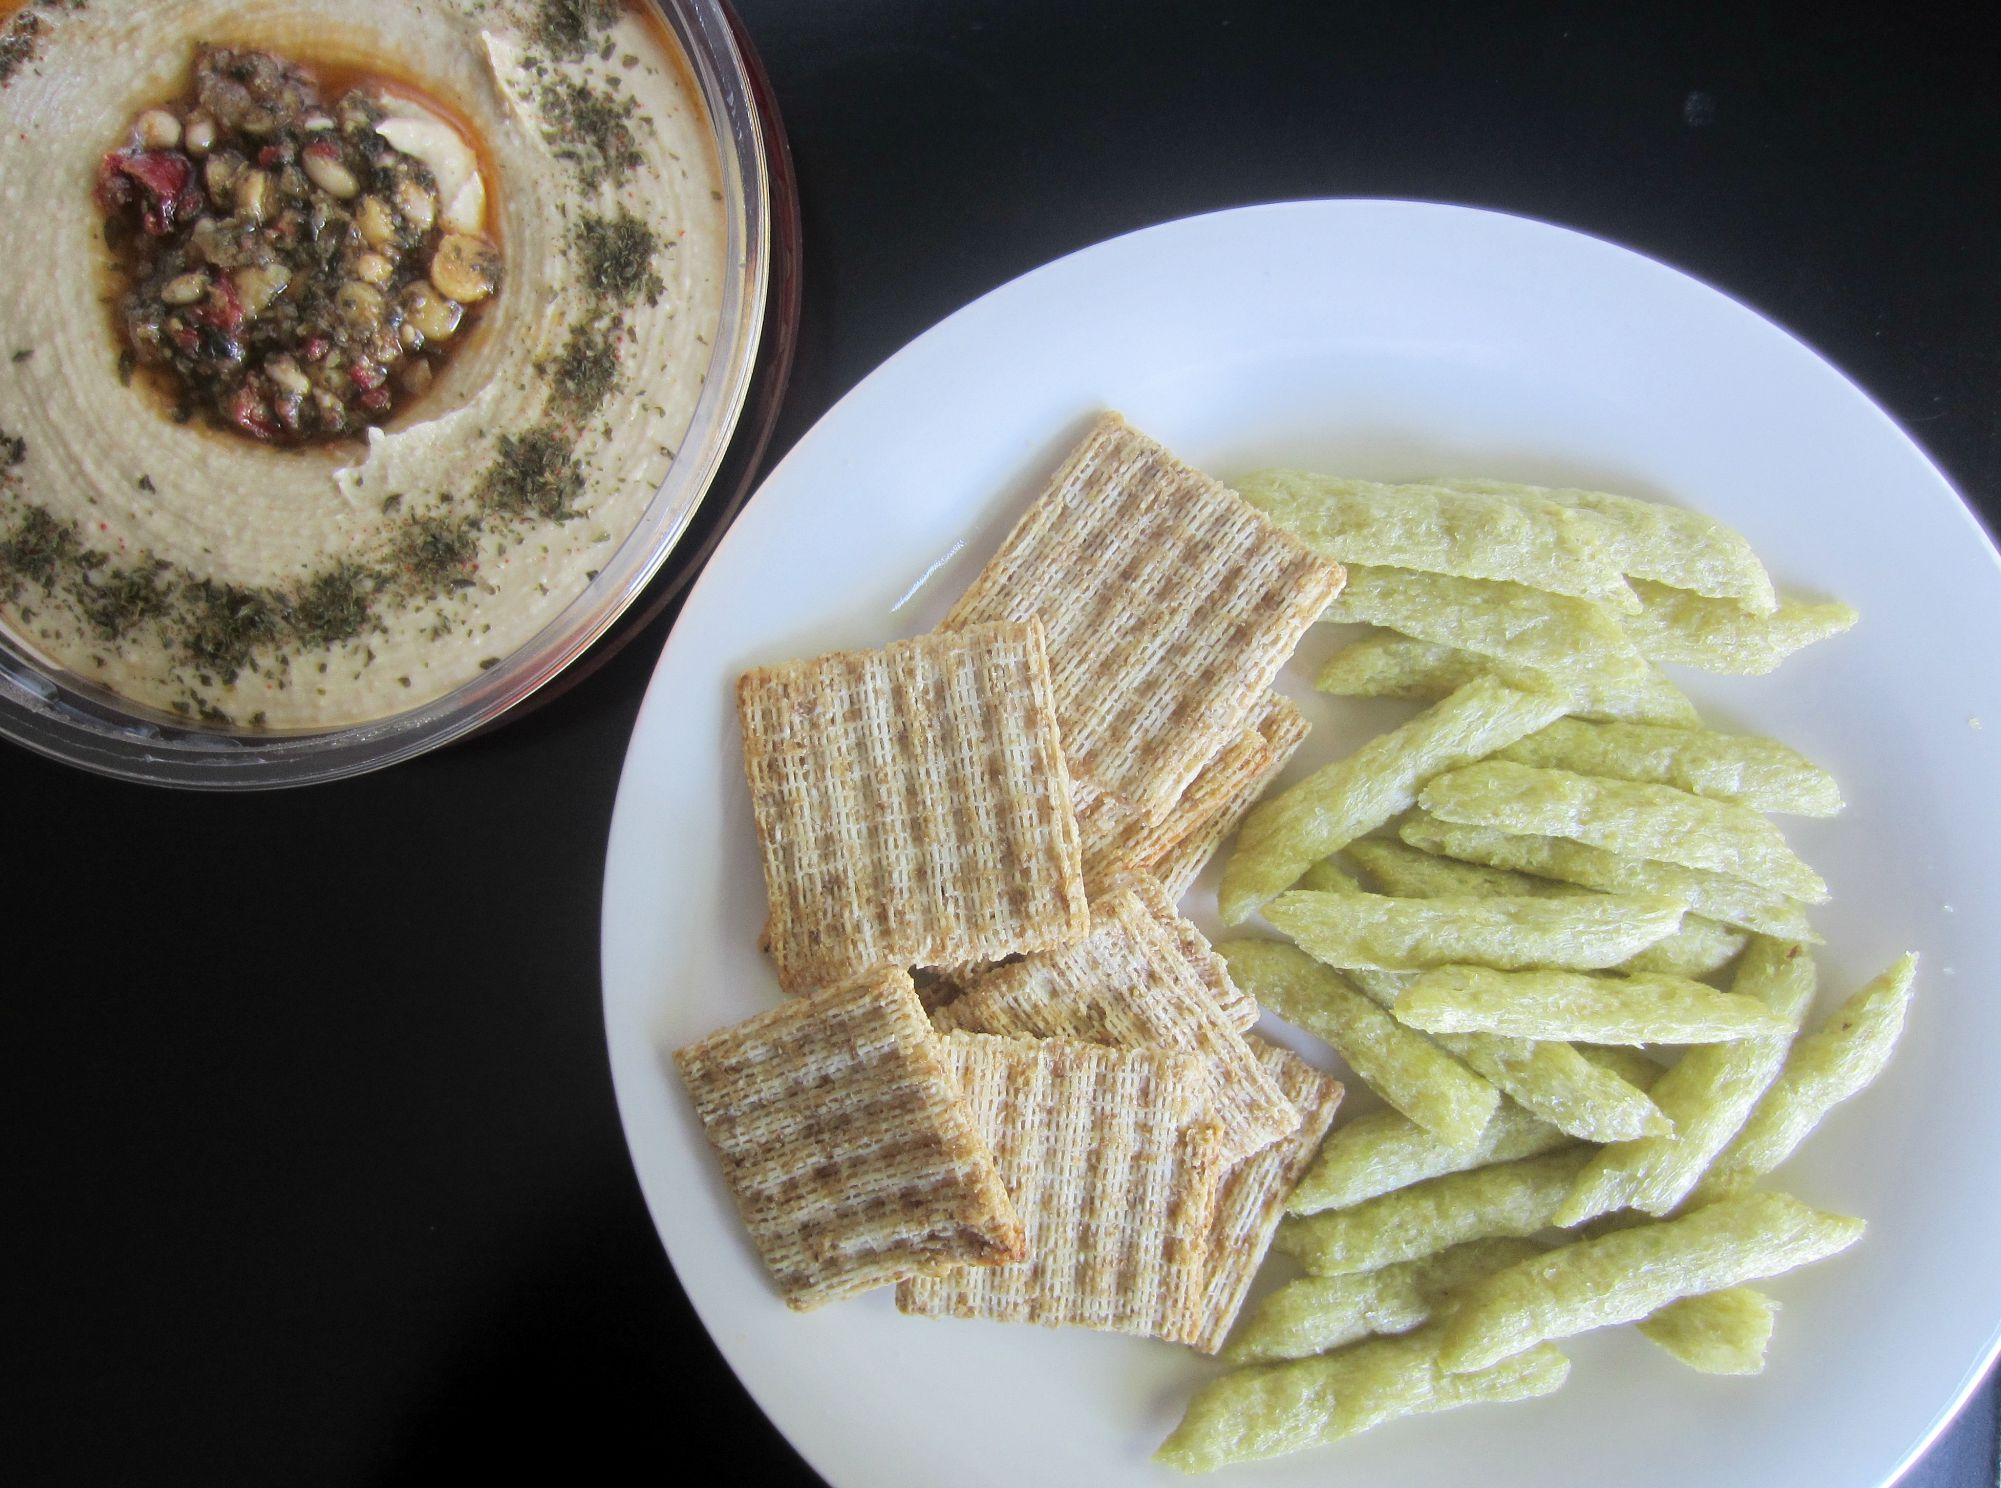 triscuits and snap pea crisps with hummus - healthy snack